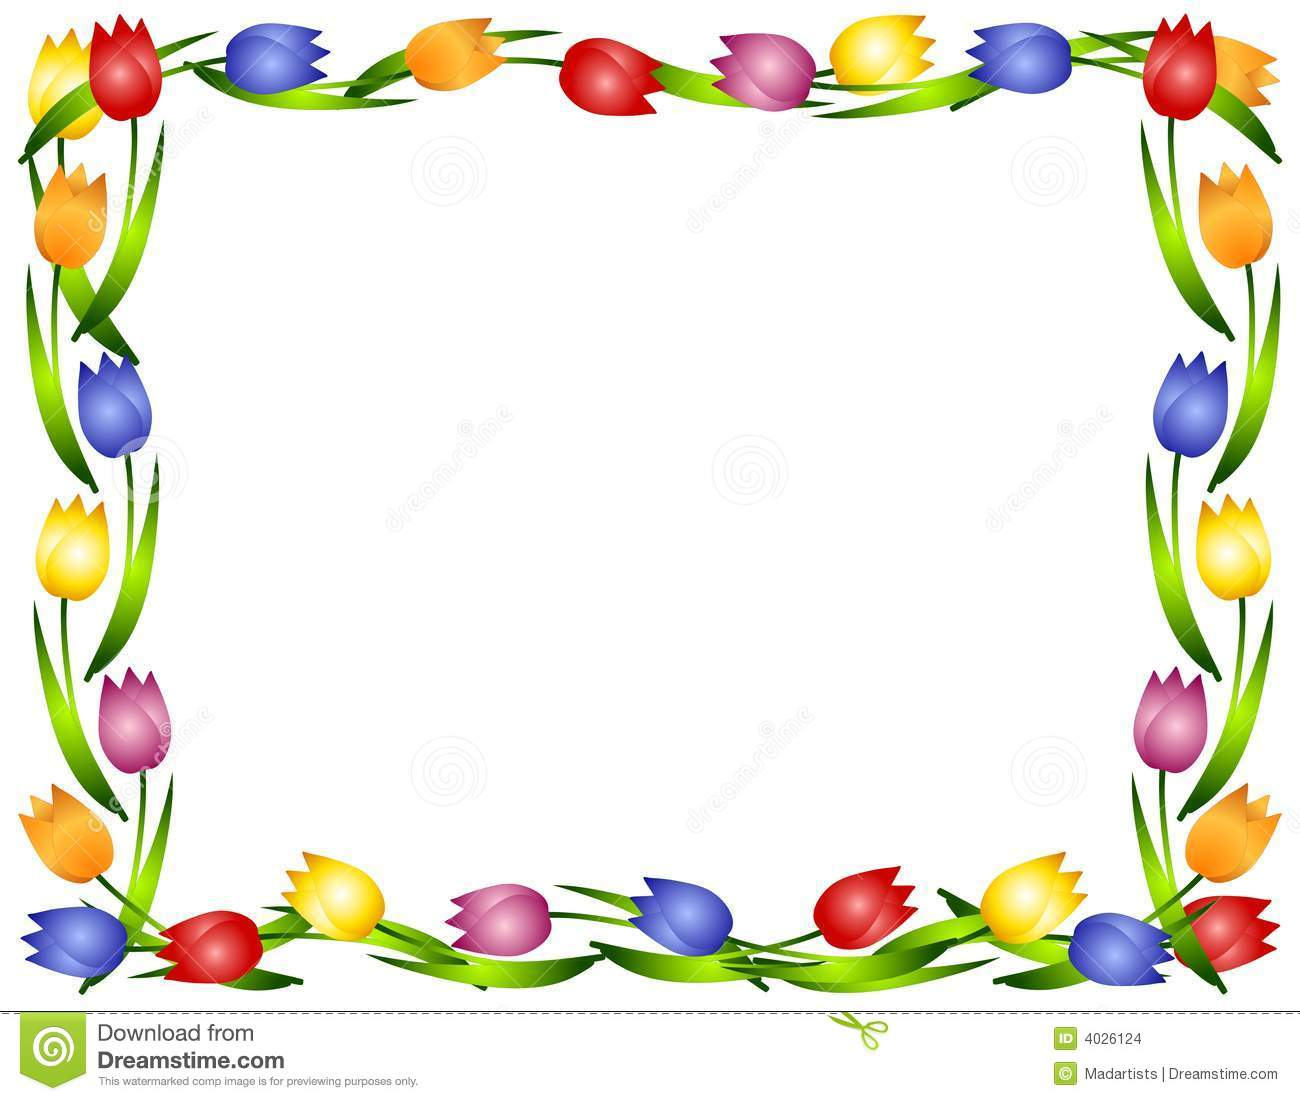 Free flowers borders download. Boarder clipart spring